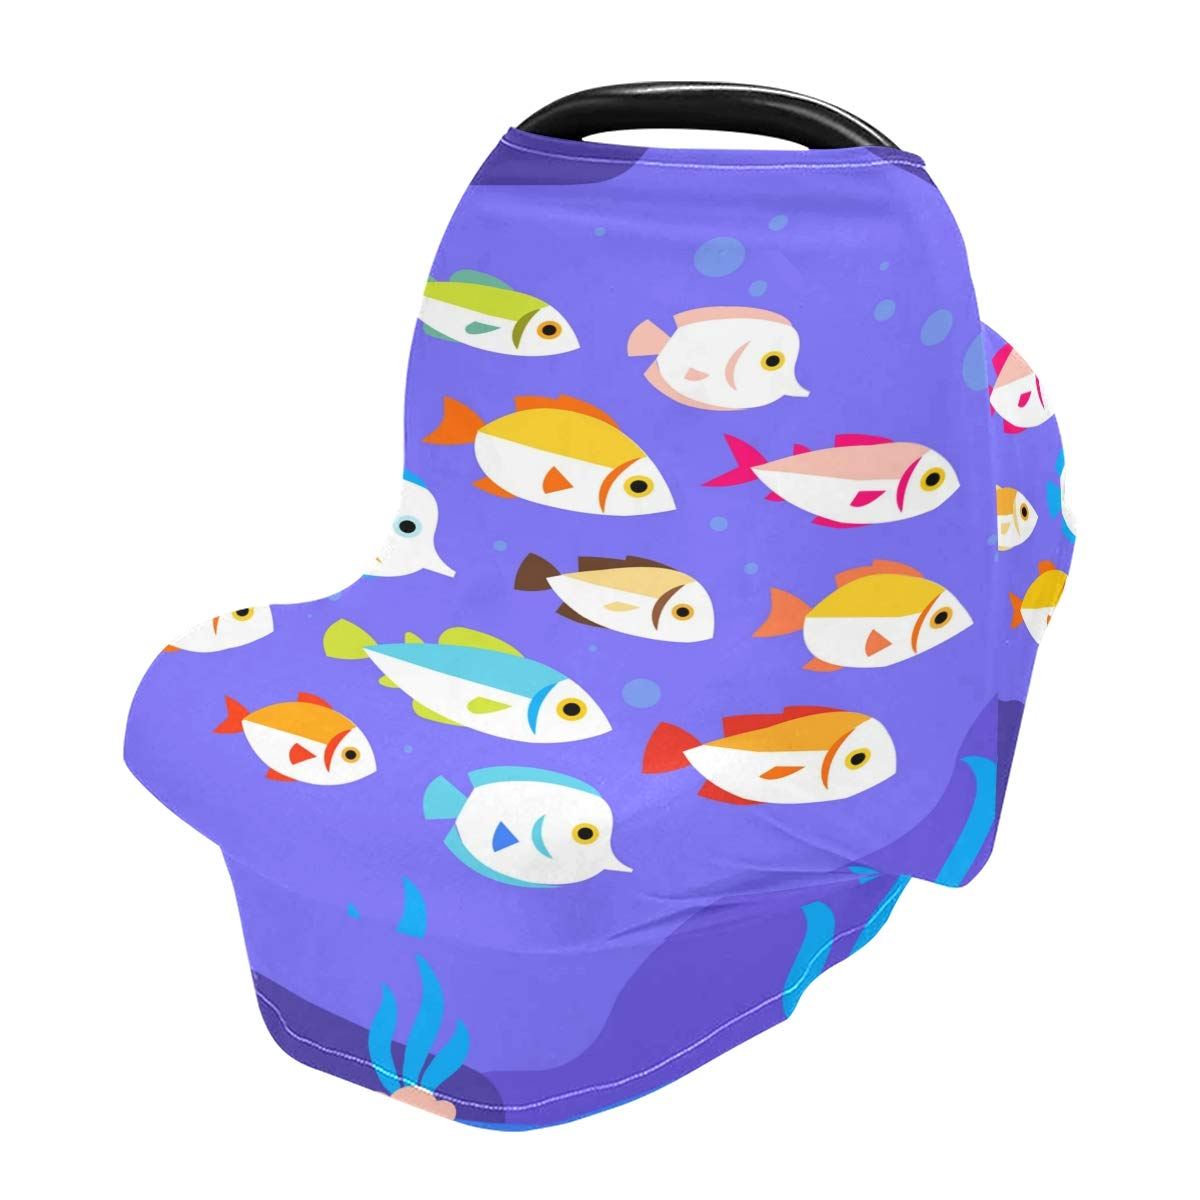 Nursing Cover Cute Colorful Fish Breastfeeding Soft Carseat Canopy Multi Use for Baby Car Seat Covers Canopy Shopping Cart Cover Scarf Light Blanket Stroller Cover